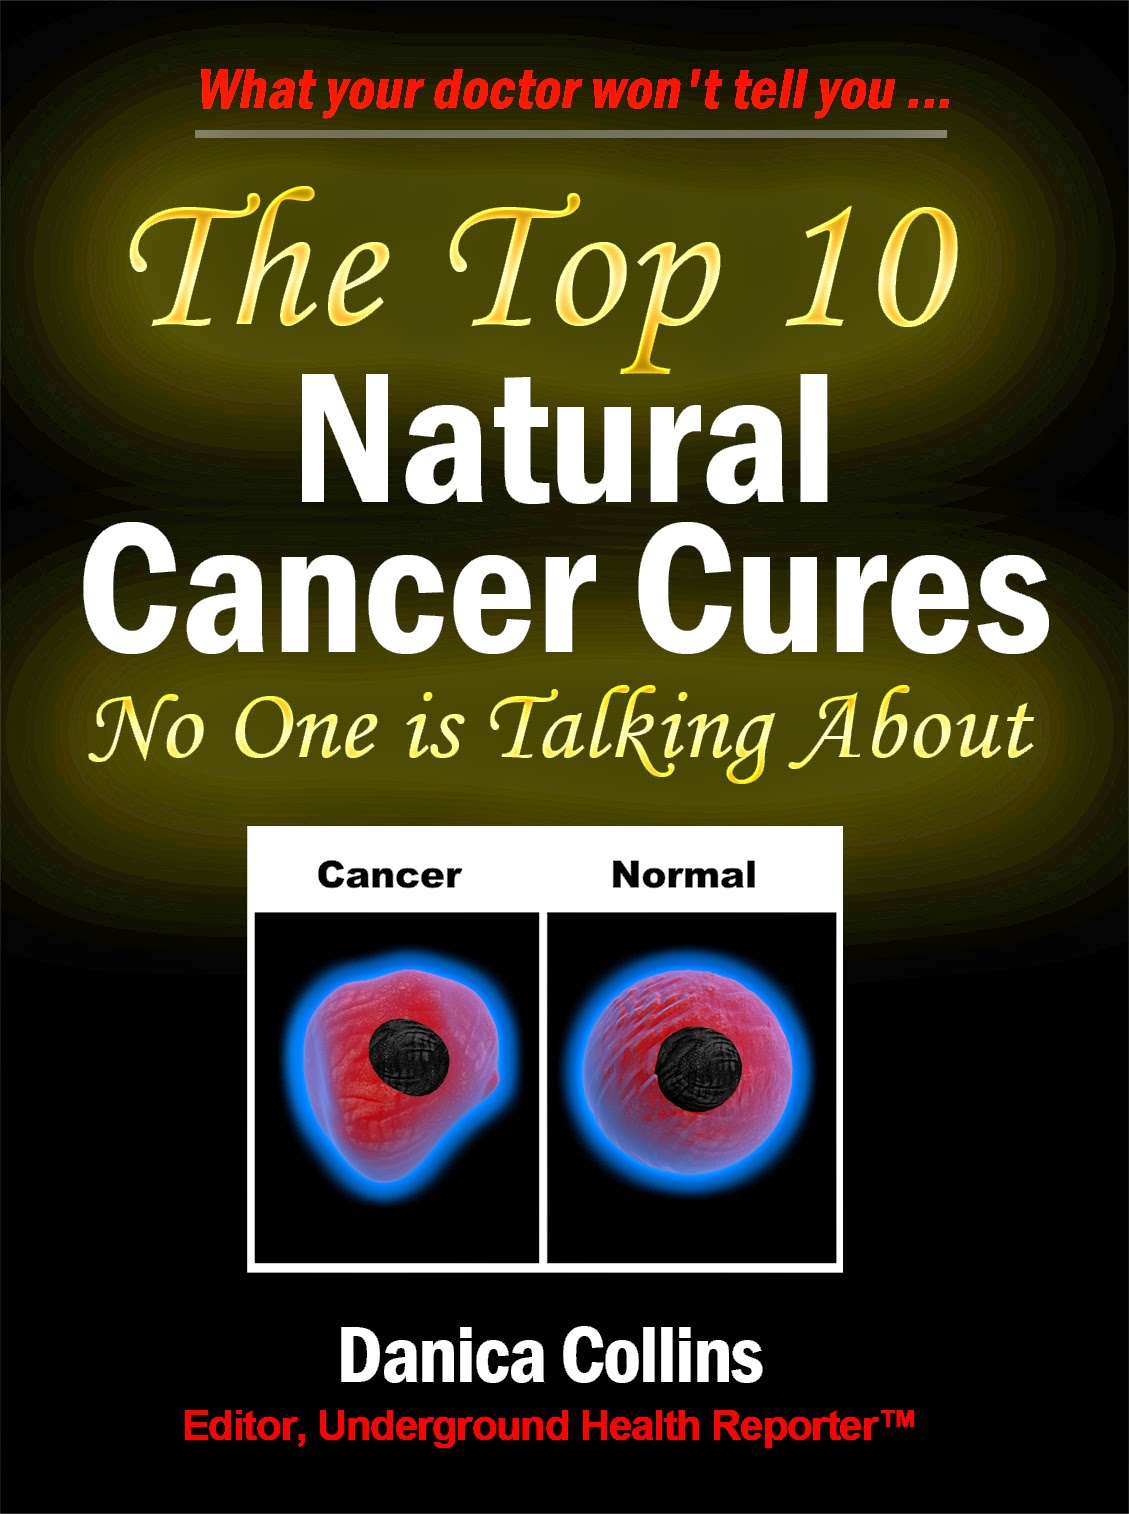 Natural Cancer Cures Your Doctor Won't Tell You About